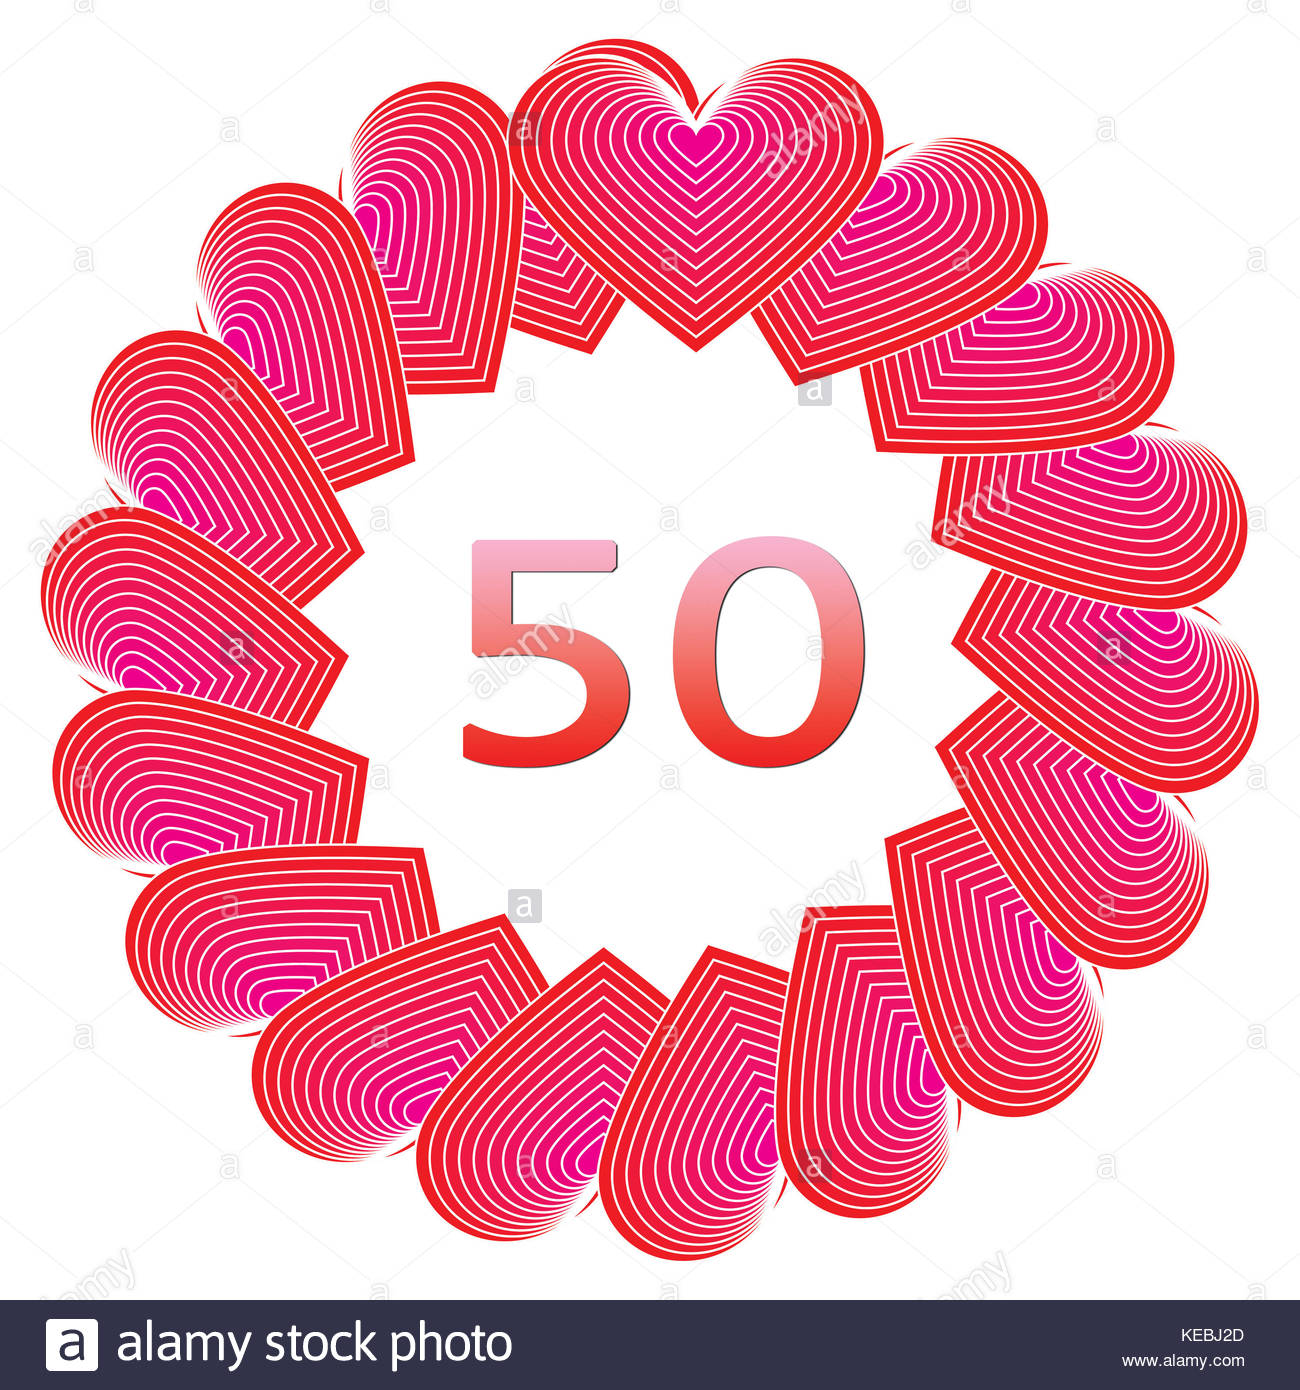 Anniversary happy birthday sign for 50 years illustration stock anniversary happy birthday sign for 50 years illustration buycottarizona Choice Image